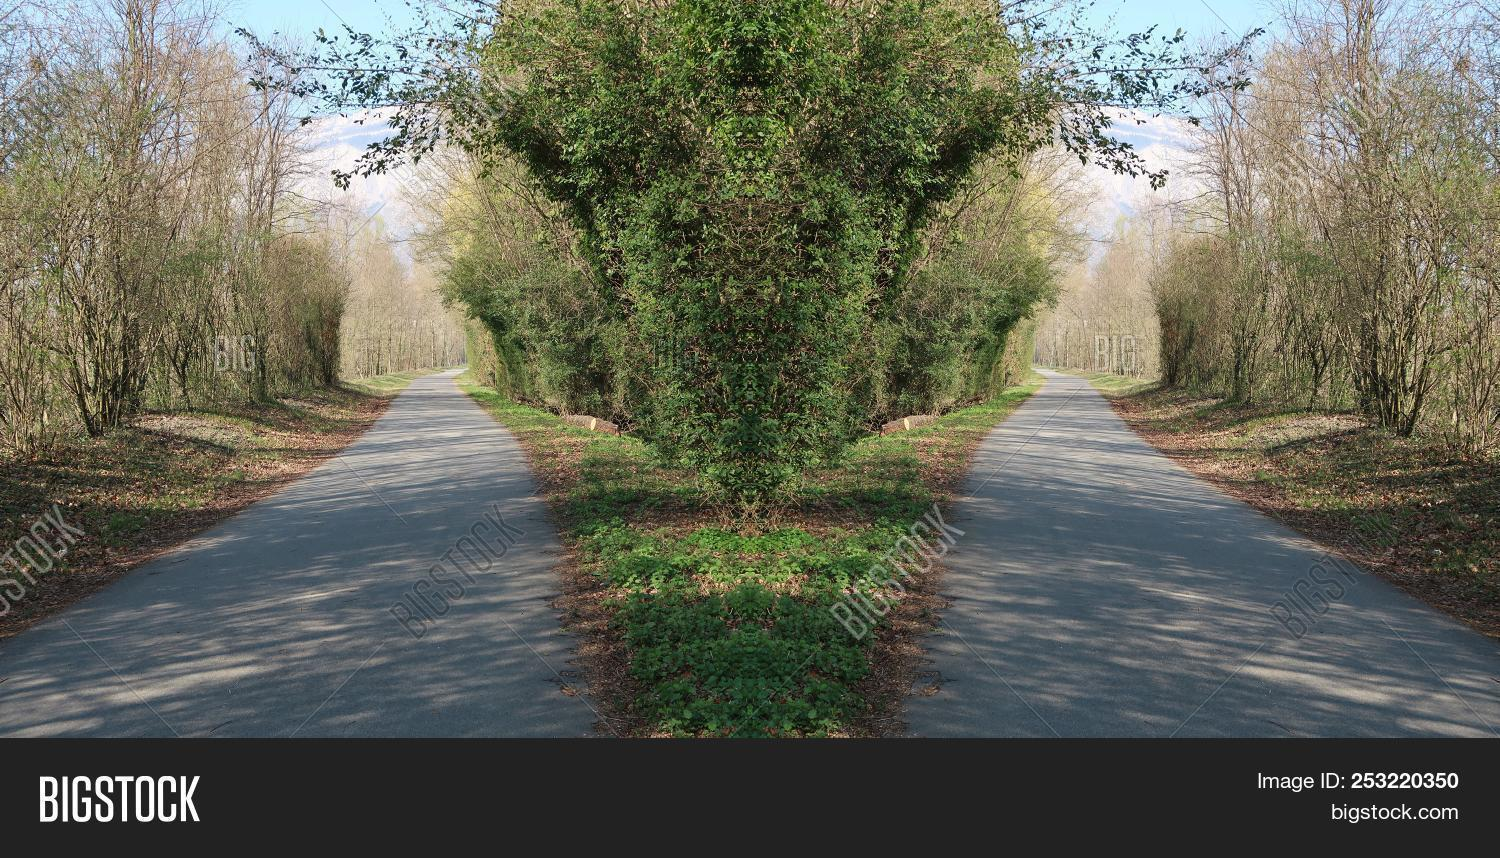 What If Two Roads Are Illusion What If >> Optical Illusion Two Image Photo Free Trial Bigstock